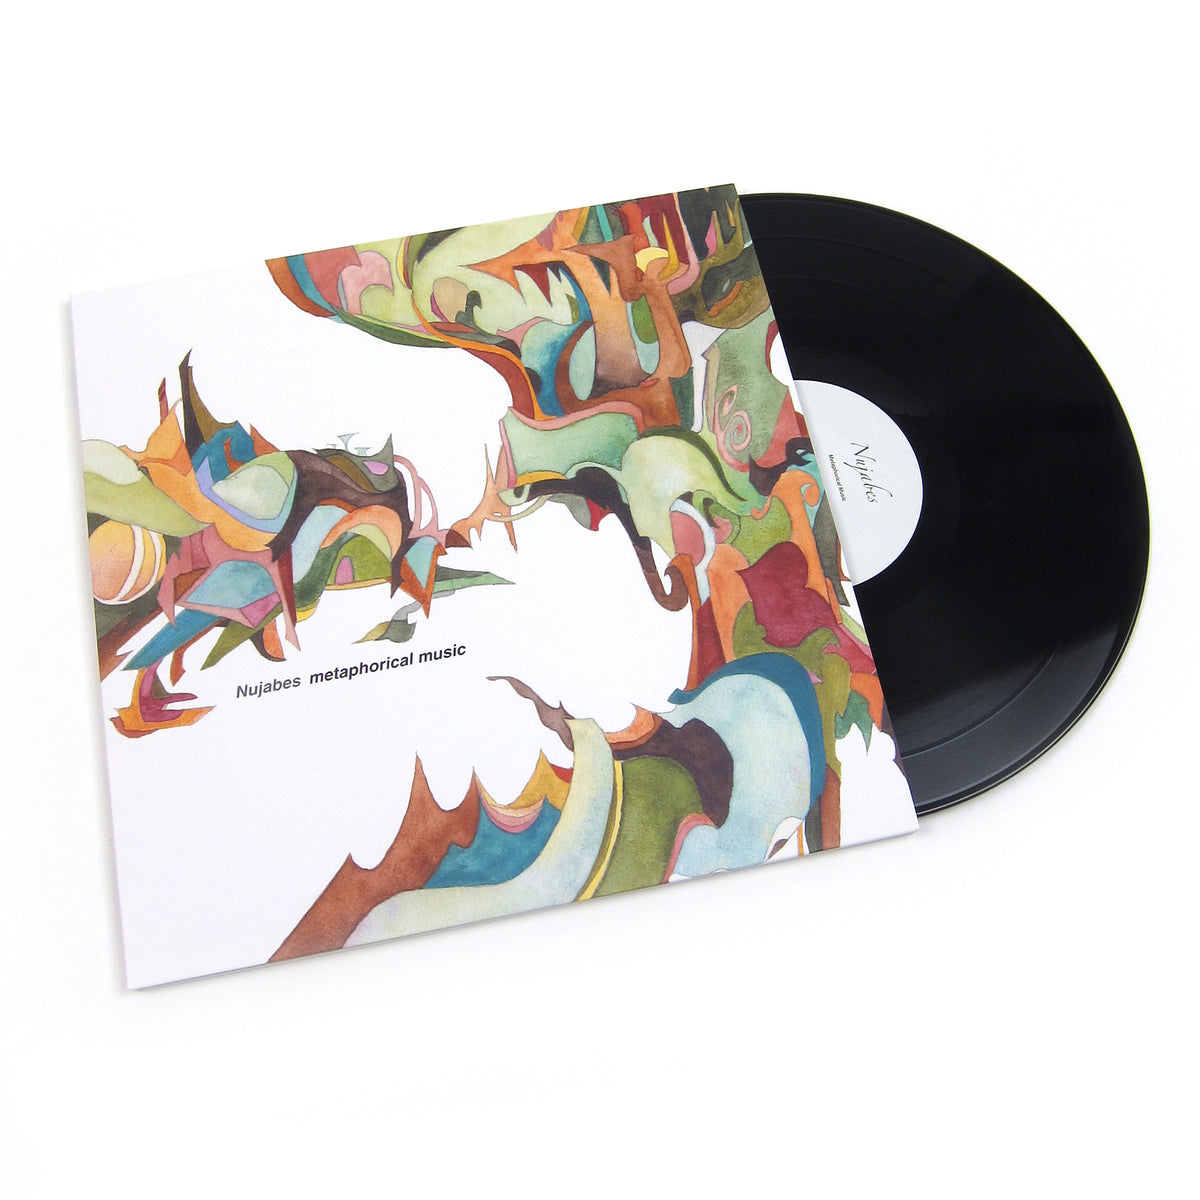 Nujabes: Metaphorical Music Vinyl 2LP